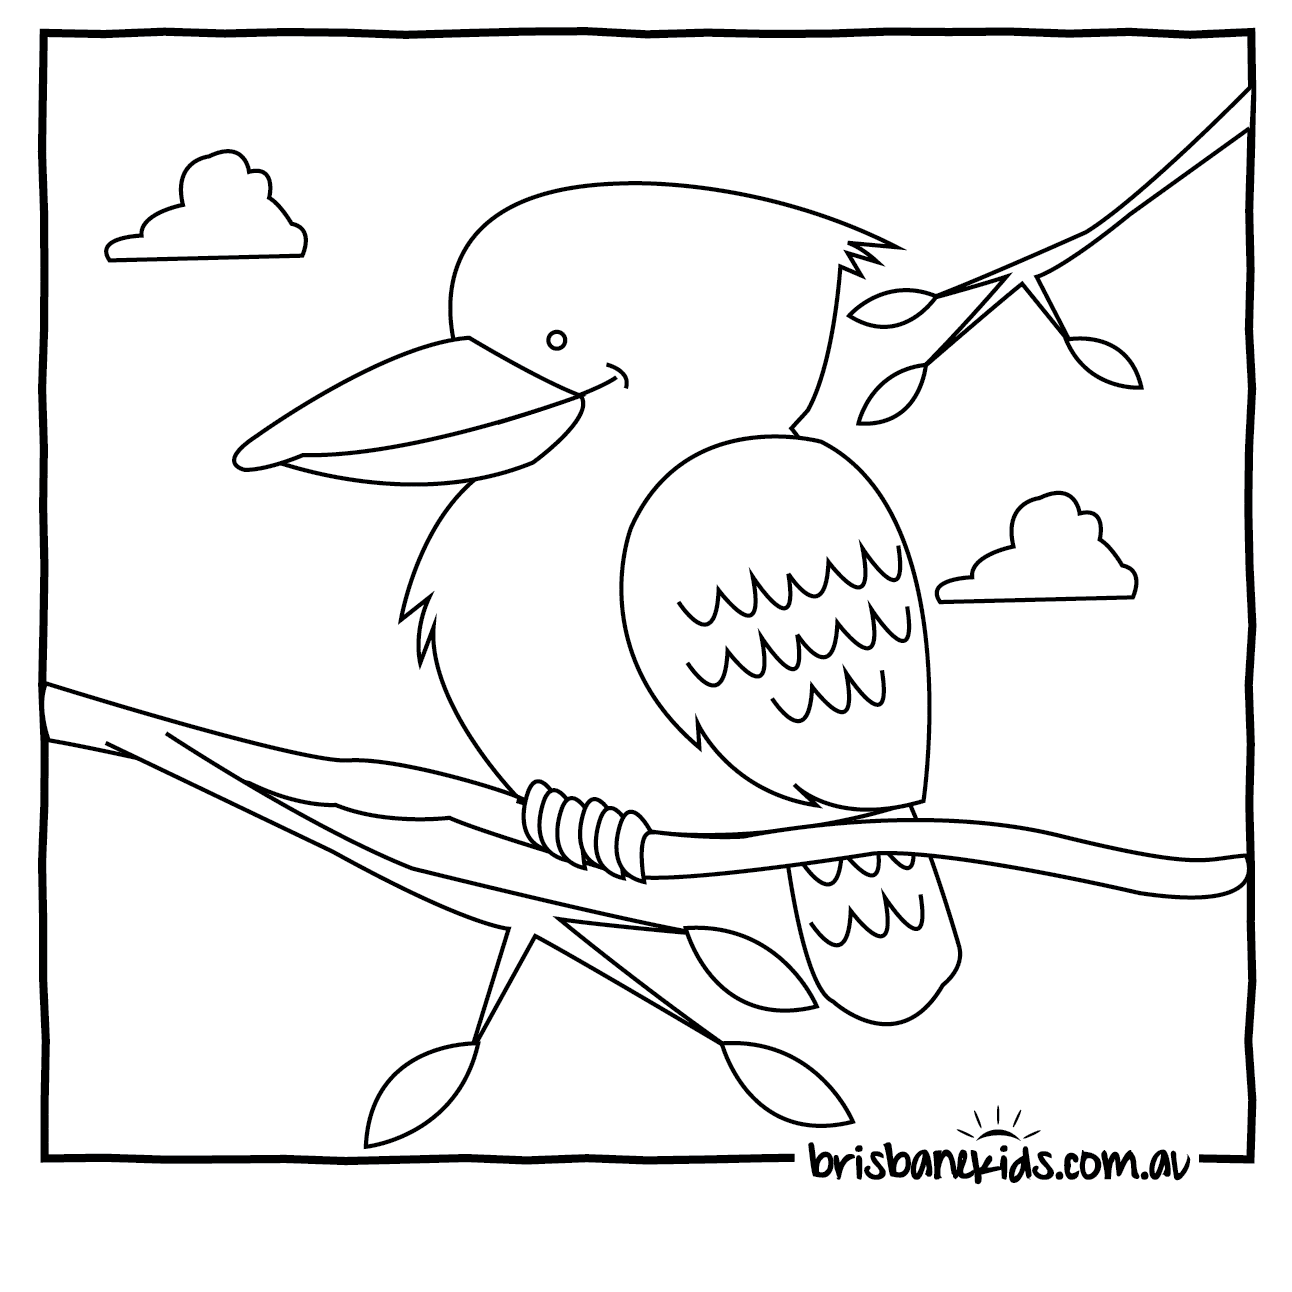 coloring pages australian animals - photo#12